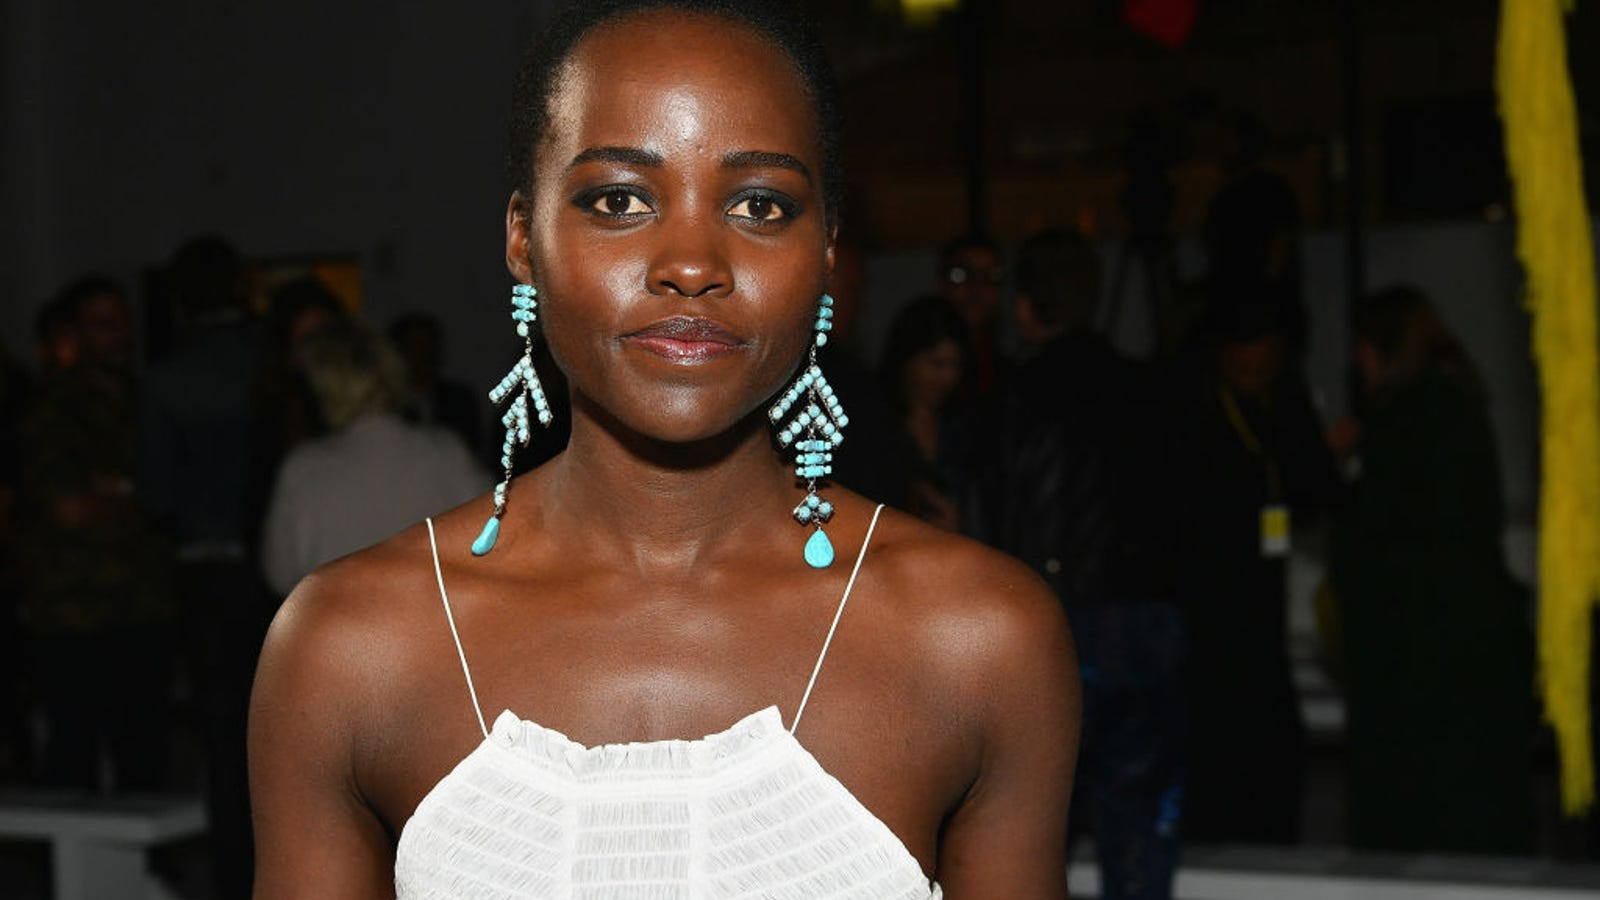 Grazia UK' Apologizes for Photoshopping Lupita Nyong'o's NaturalHair